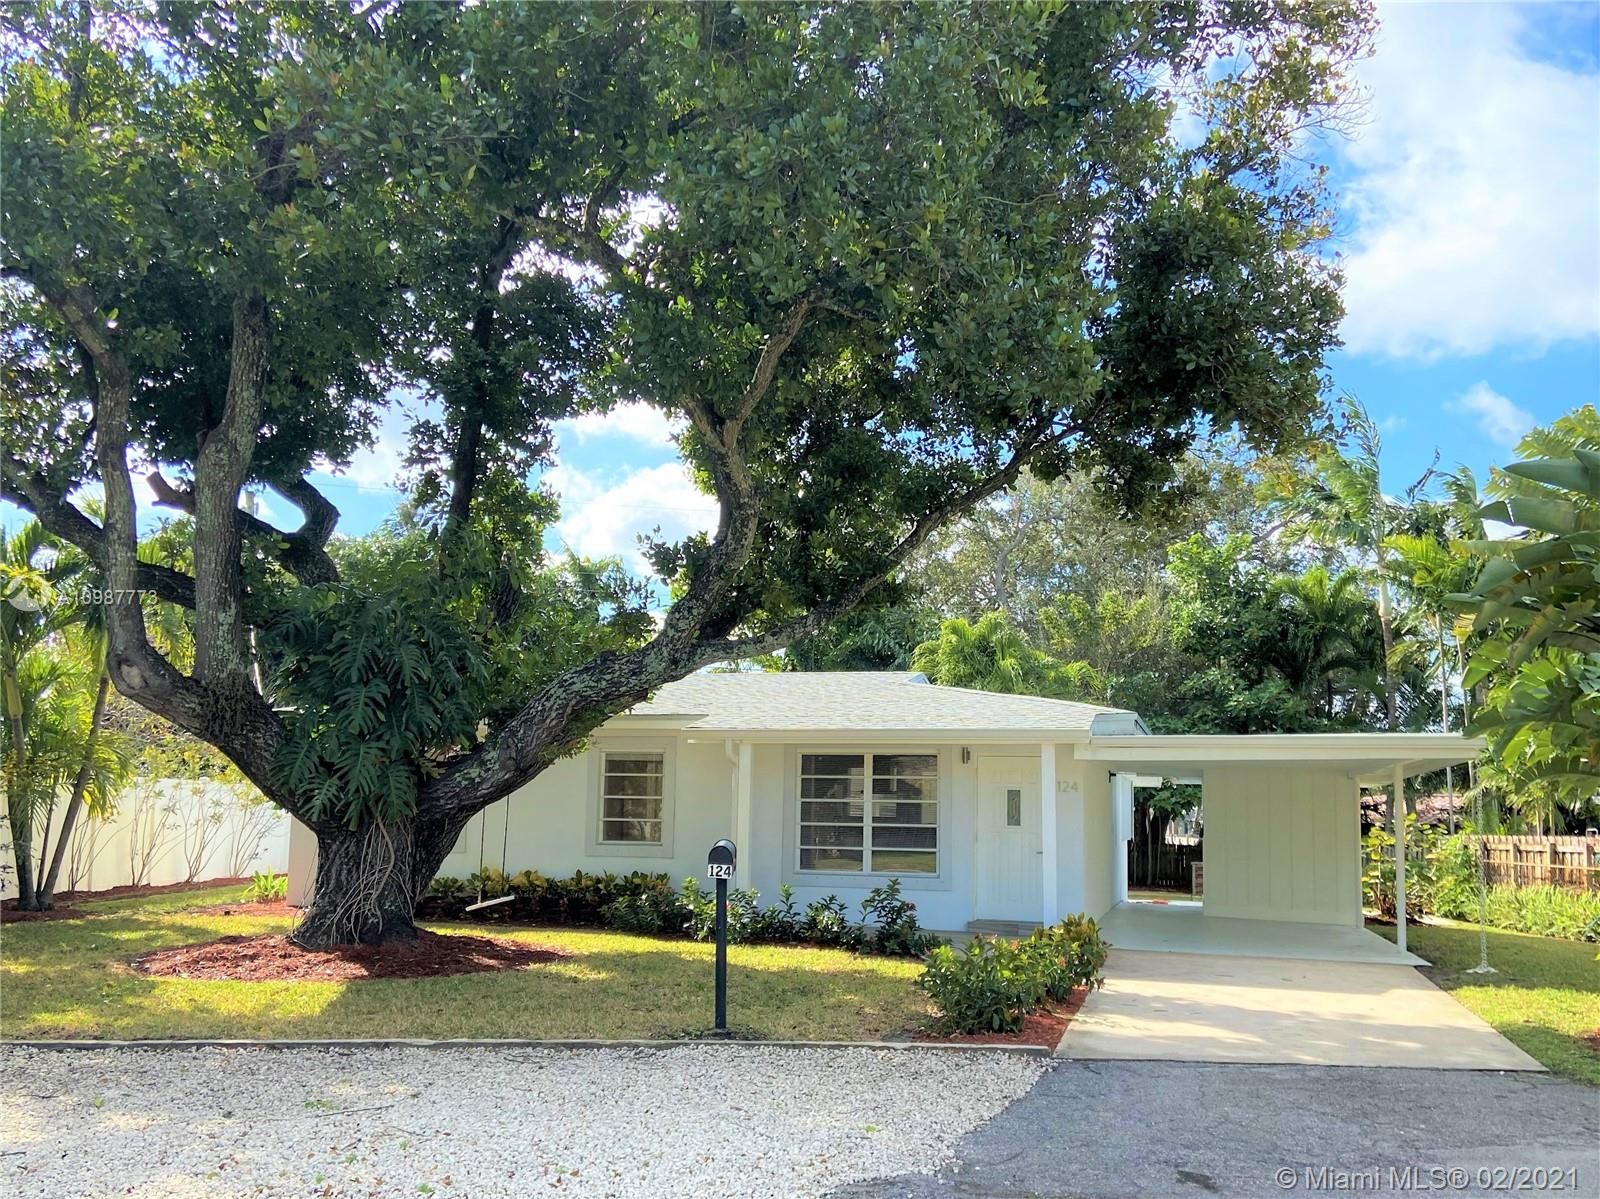 Charming updated home with 3 bed/2bath + Florida/family room. Beautiful open concept kitchen with granite countertop, stainless steel appliances and separate laundry room. New roof and A/C. Tile flooring throughout the house. Backyard has a shed and plenty space for entertainment. Great location, very close to restaurants, nightlife, shopping, parks, boat ramps, airports and beaches. Near Wilton drive and Wilton Manors' Art and Entertaining District. Move-in ready! Very easy to show!